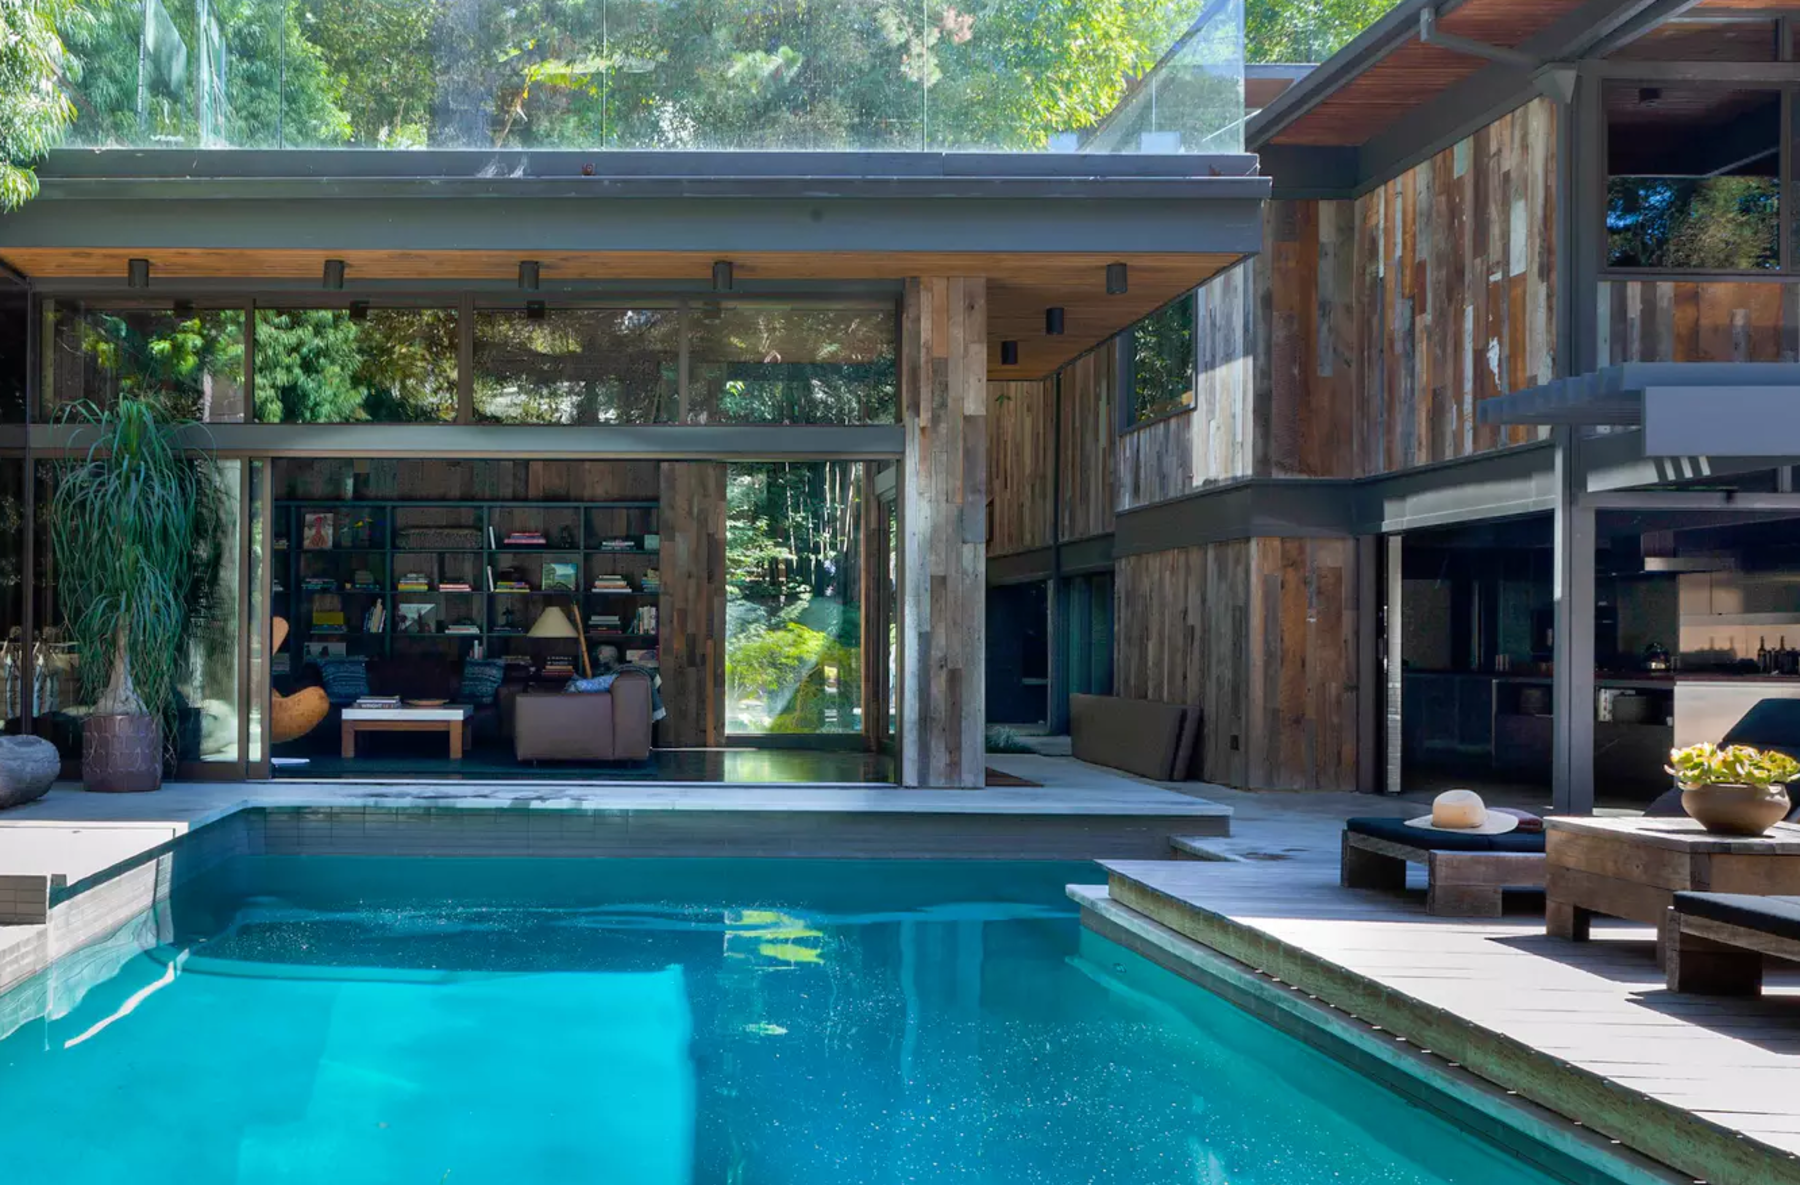 Inside Hollywood Hills Coolest Home Pool Party Central